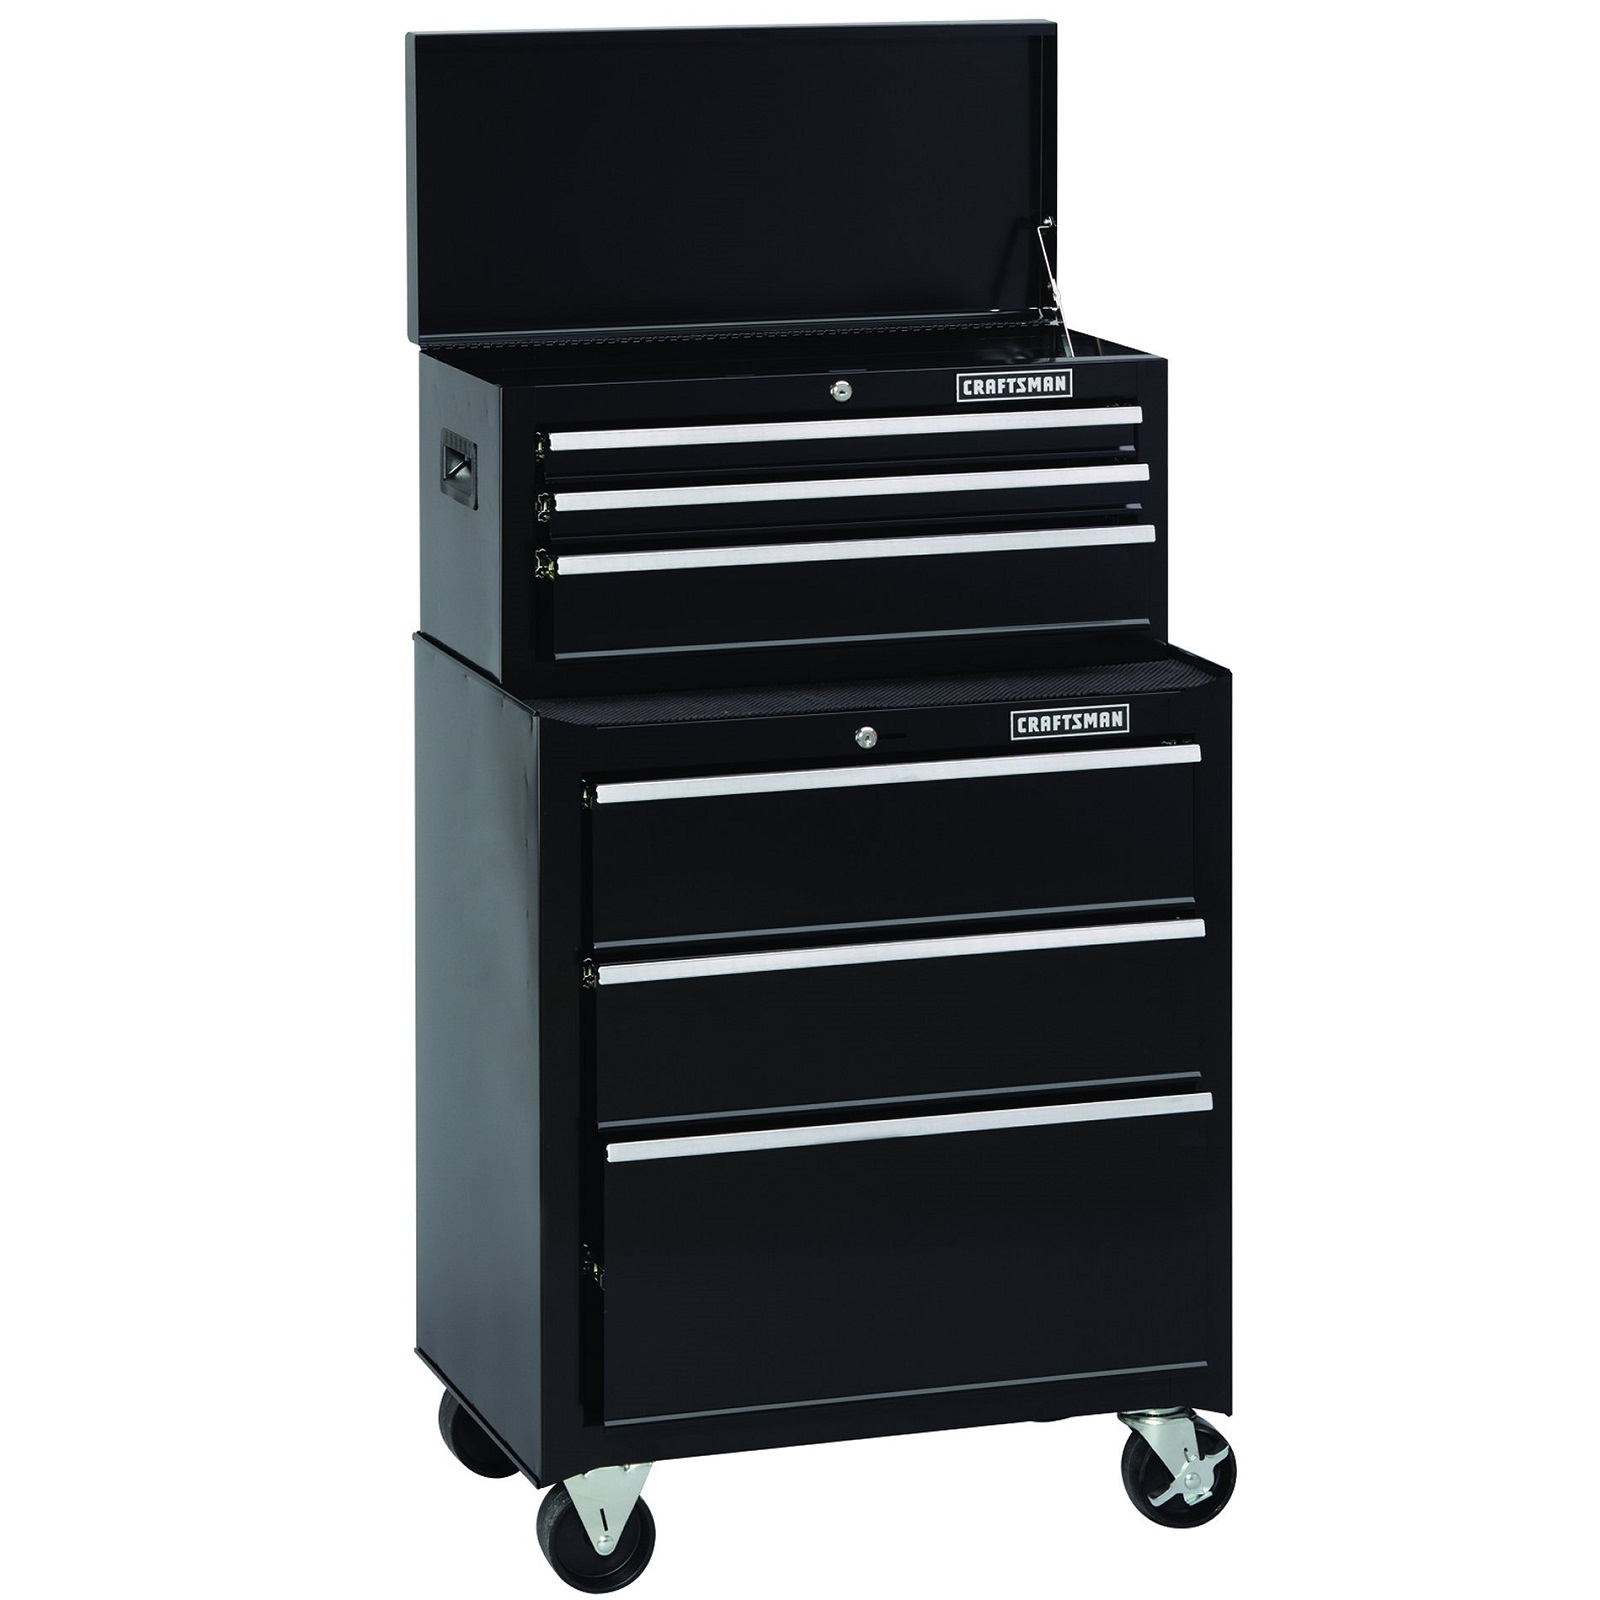 Craftsman 26 in. Wide 6-Drawer Ball-Bearing combo - Black